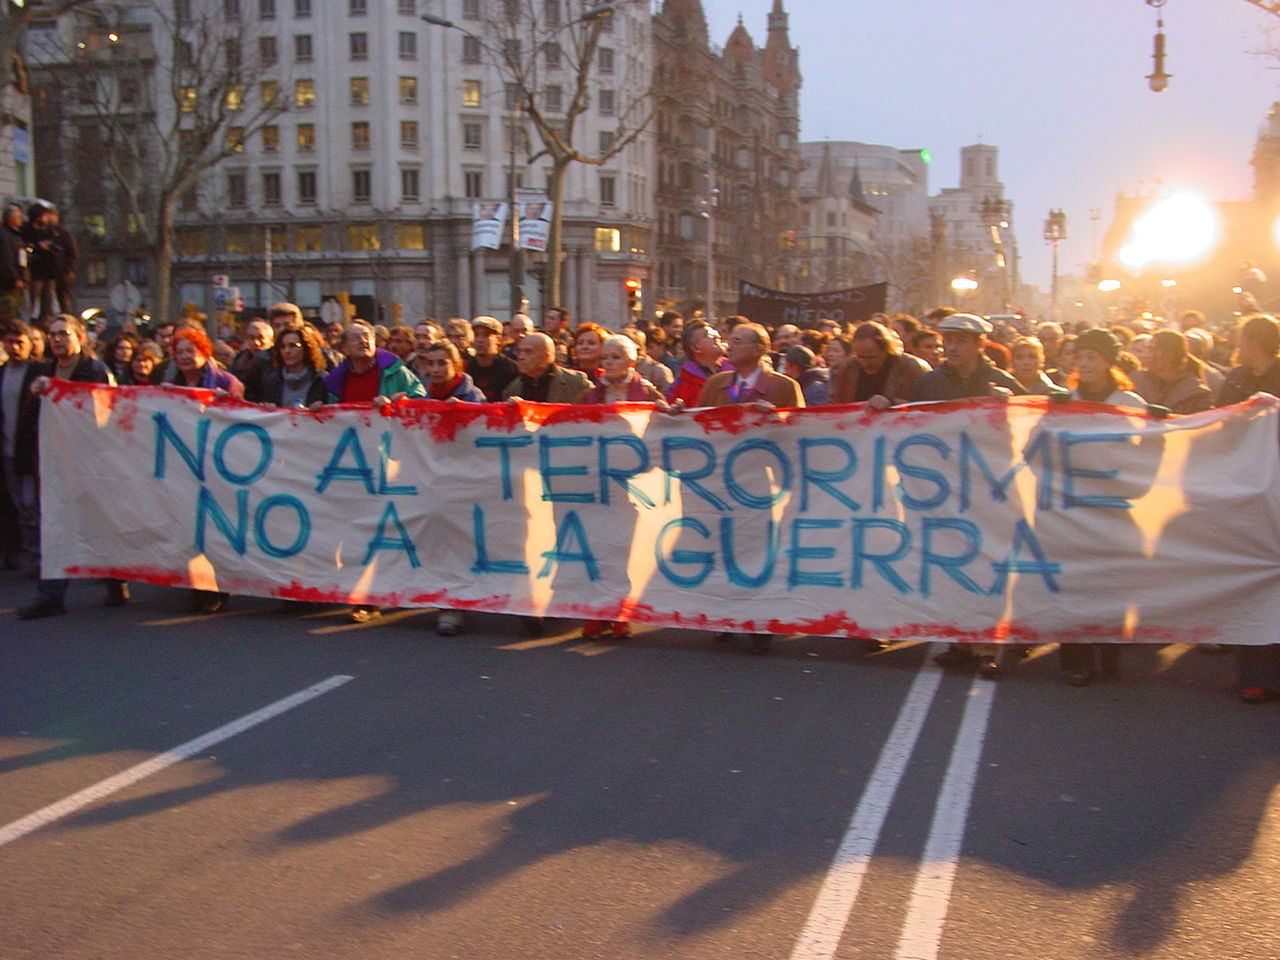 Spaniards demonstrating against war and terrorism (cc photo: kippelboy/Wikimedia)